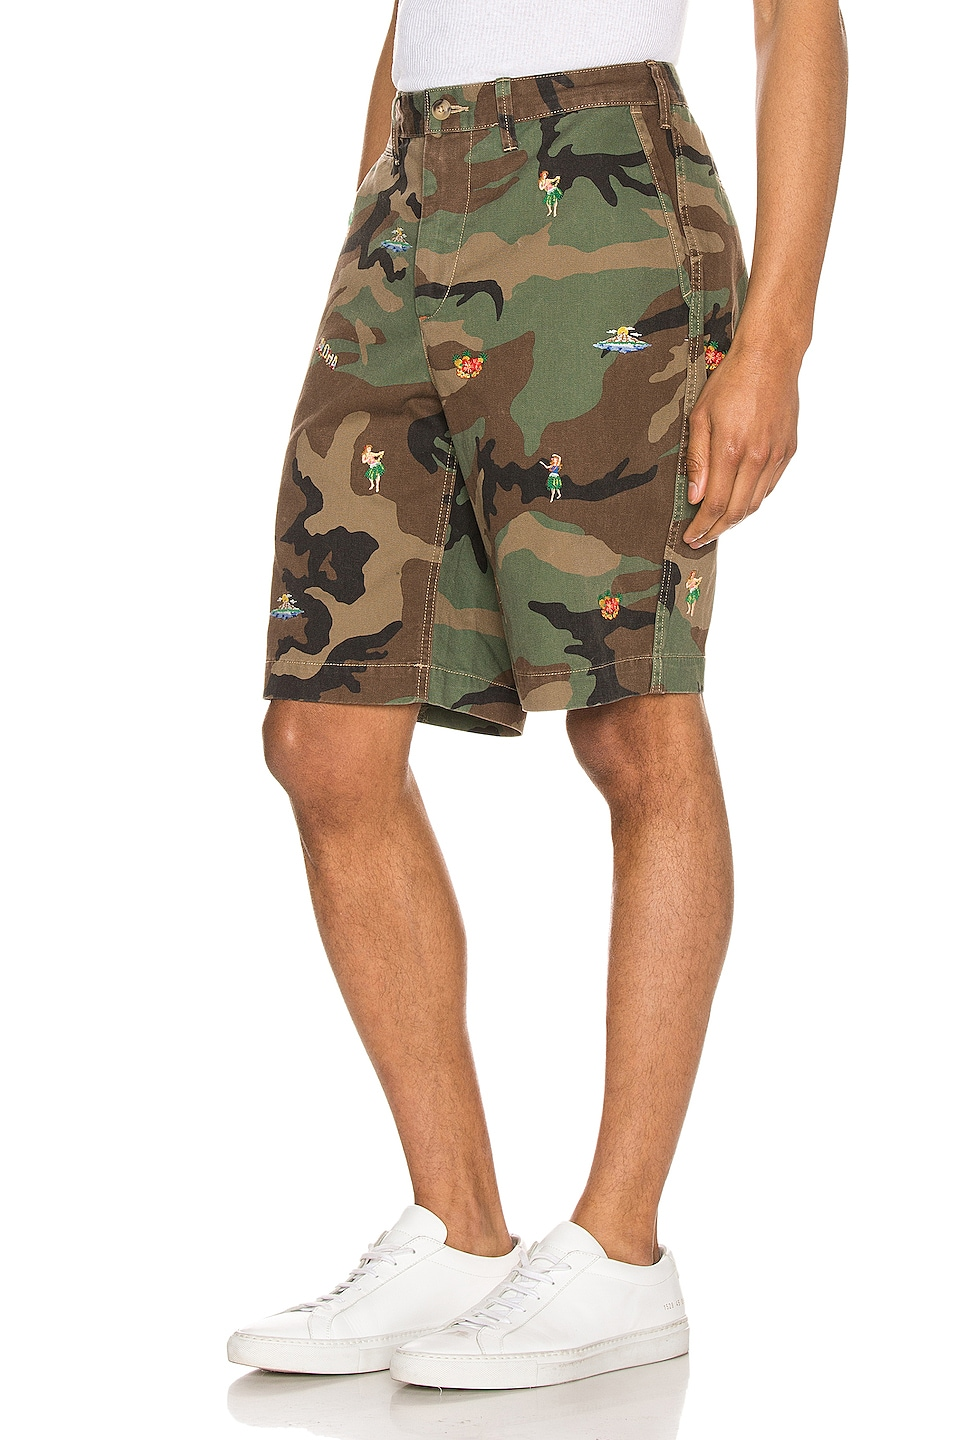 Image 3 of Polo Ralph Lauren Rugged Chino Shorts in Surplus Camo With Hula